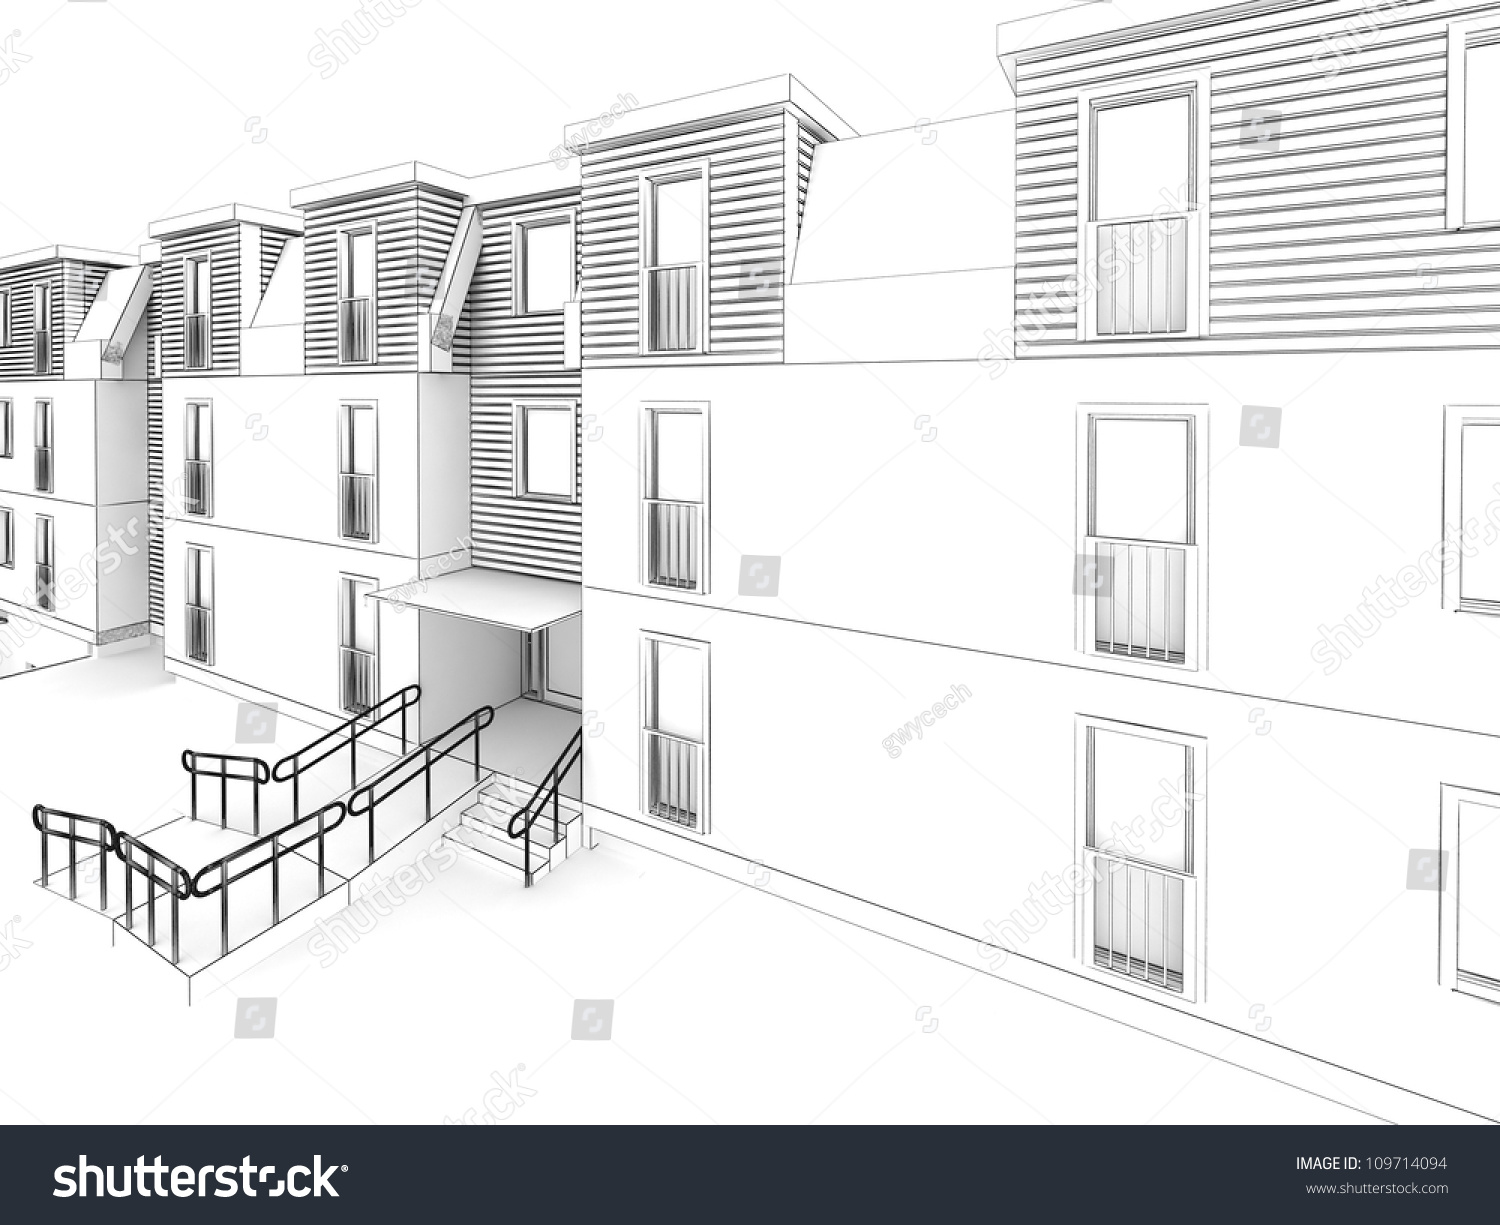 Apartment design architecture drawing